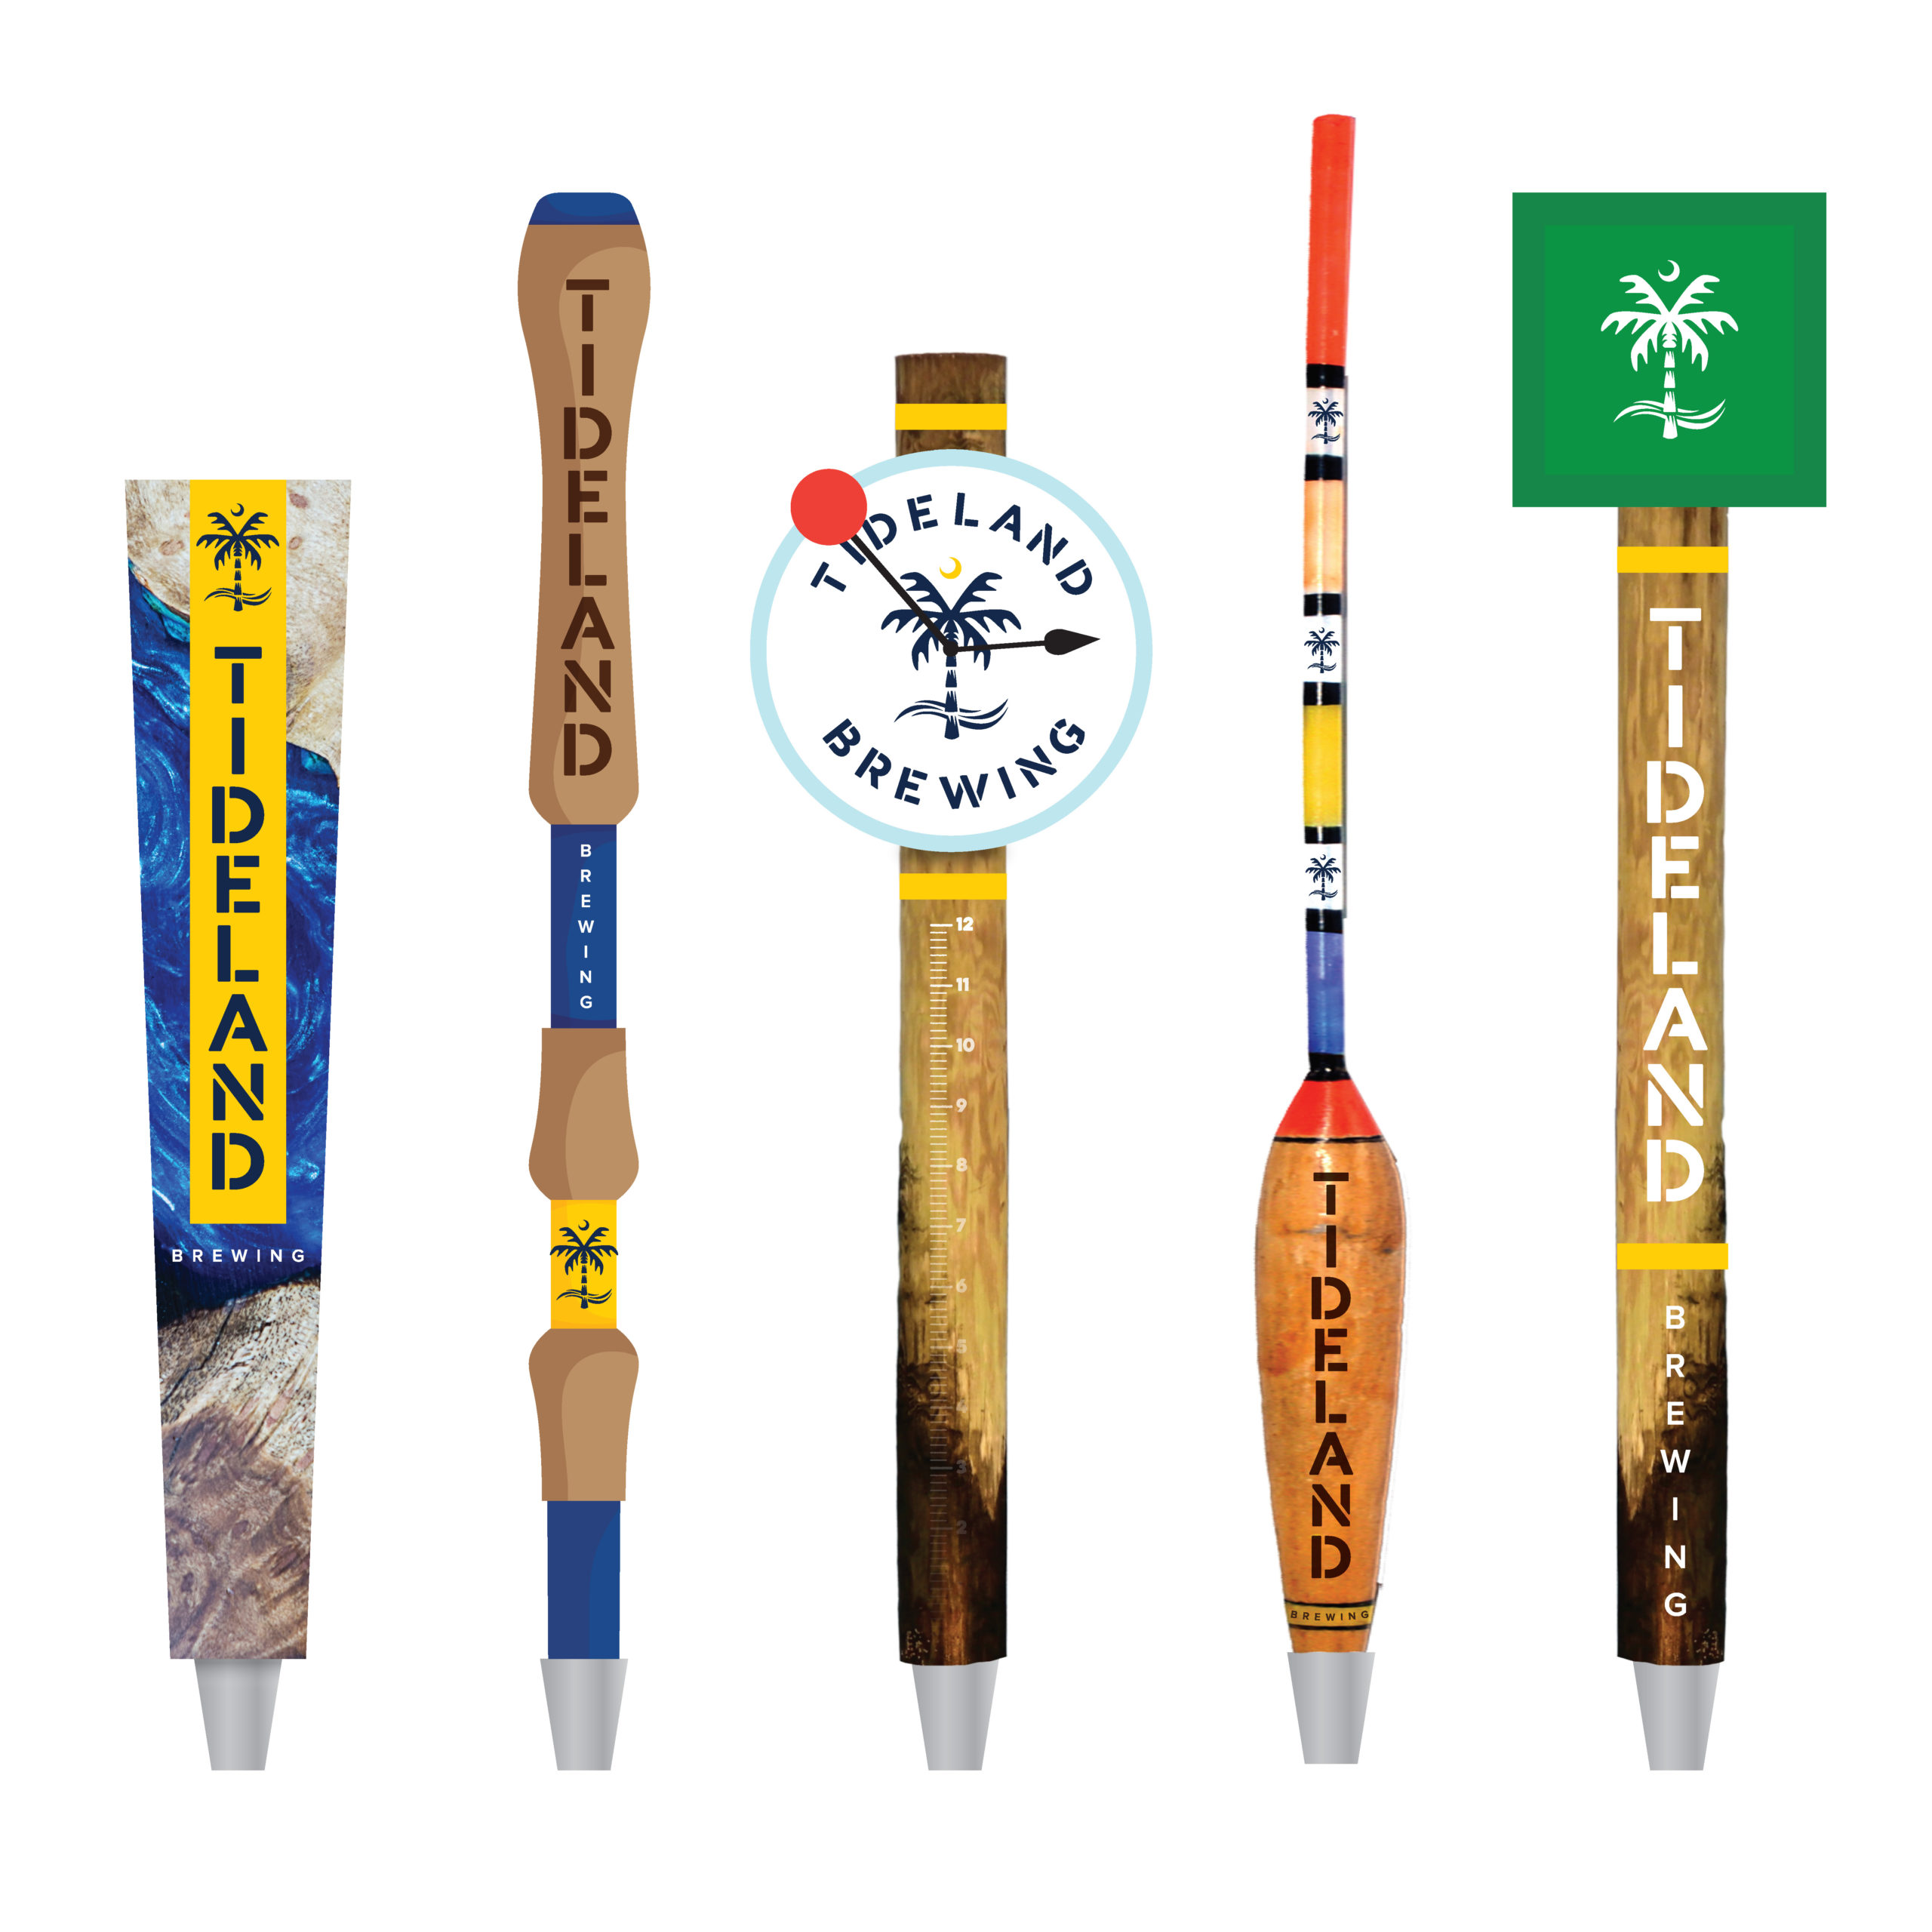 Tideland Brewing Tap Handle Concepts